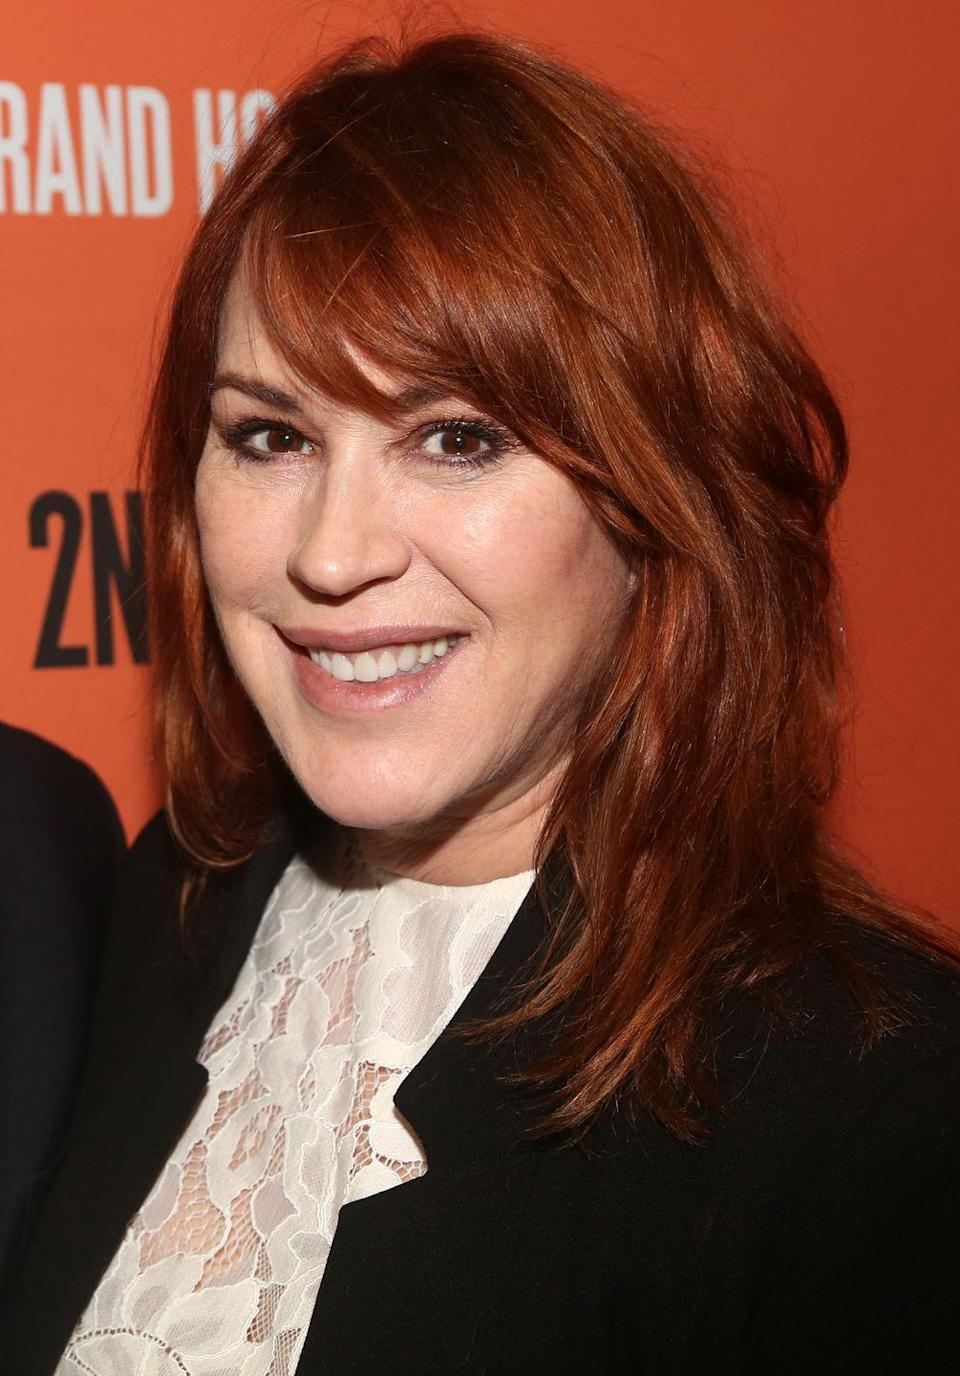 <p>Ringwald moved to France in the mid-1990s before returning back to the U.S. every now and then for a few roles. She also experienced some success in theater, headlining as Sally Bowles in Broadway's revival of <em>Cabaret </em>in December 2001. Ringwald also released a jazz album in 2013, following in her father's footsteps as a jazz musician. Today, she has a recurring role on the CW series <em>Riverdale.</em><br></p>